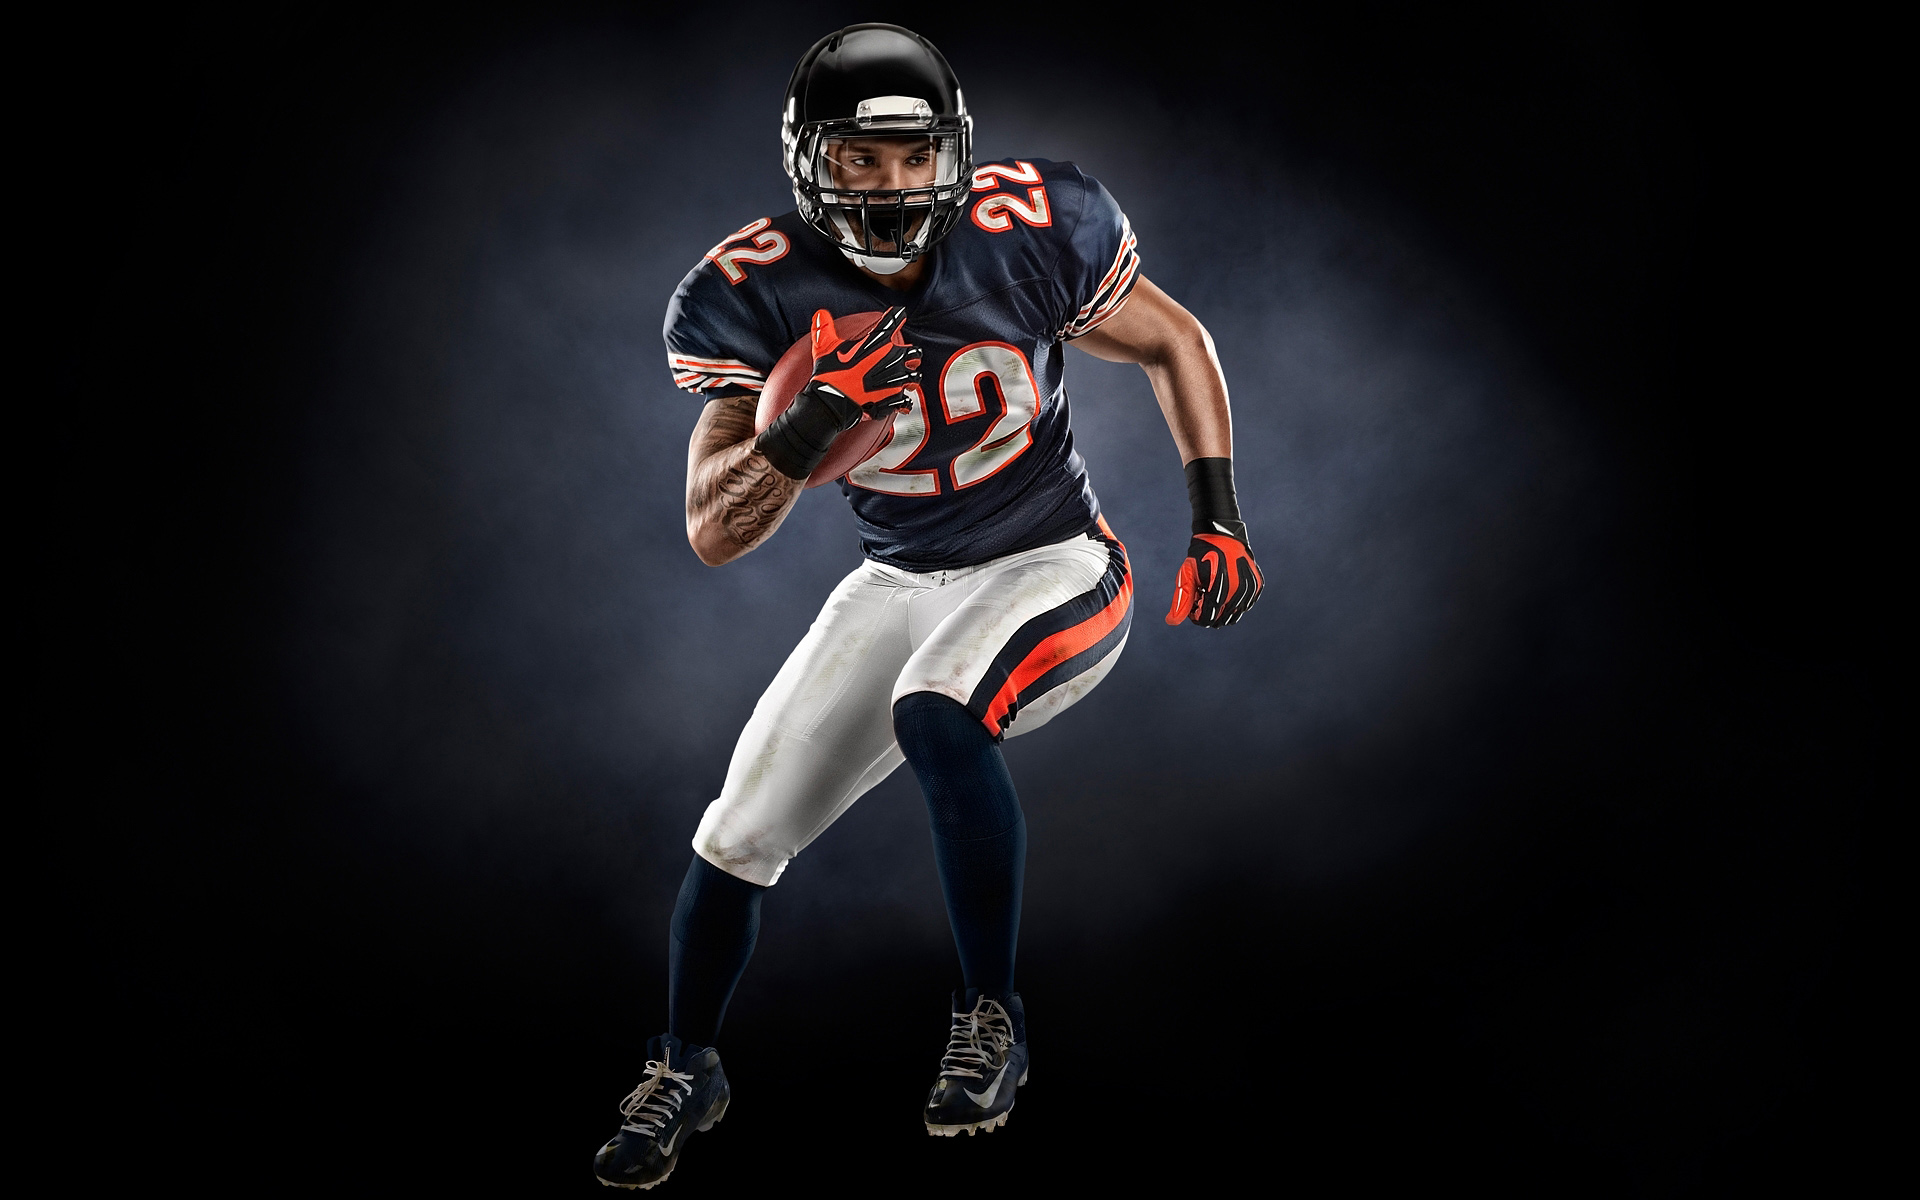 Matt Forte photoshoot by Blair Bunting